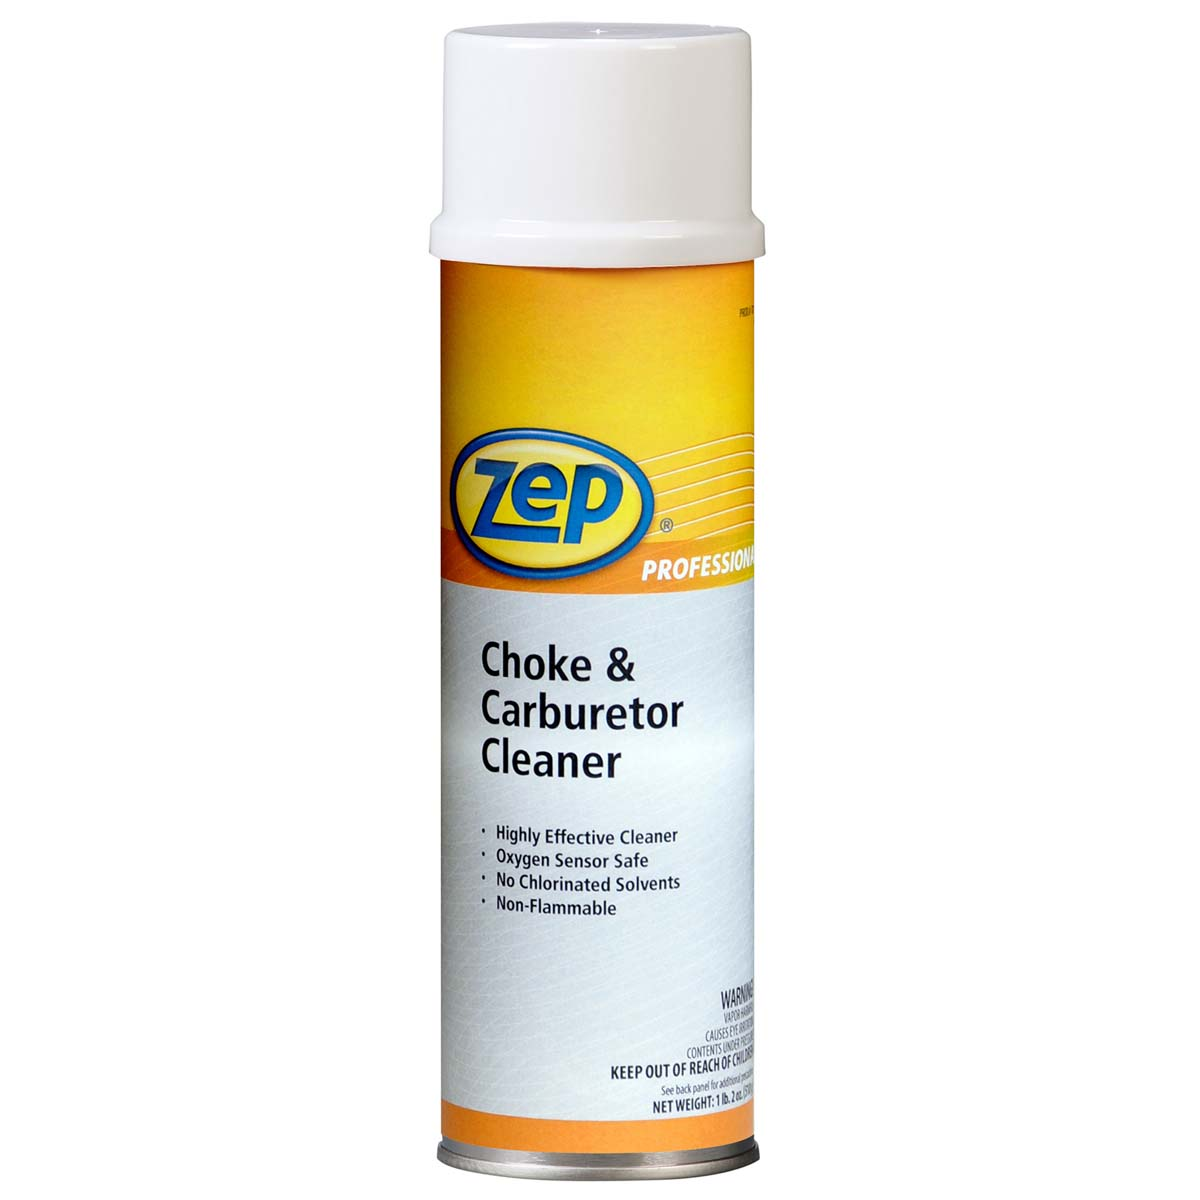 ZEP Choke and Carburetor Cleaner